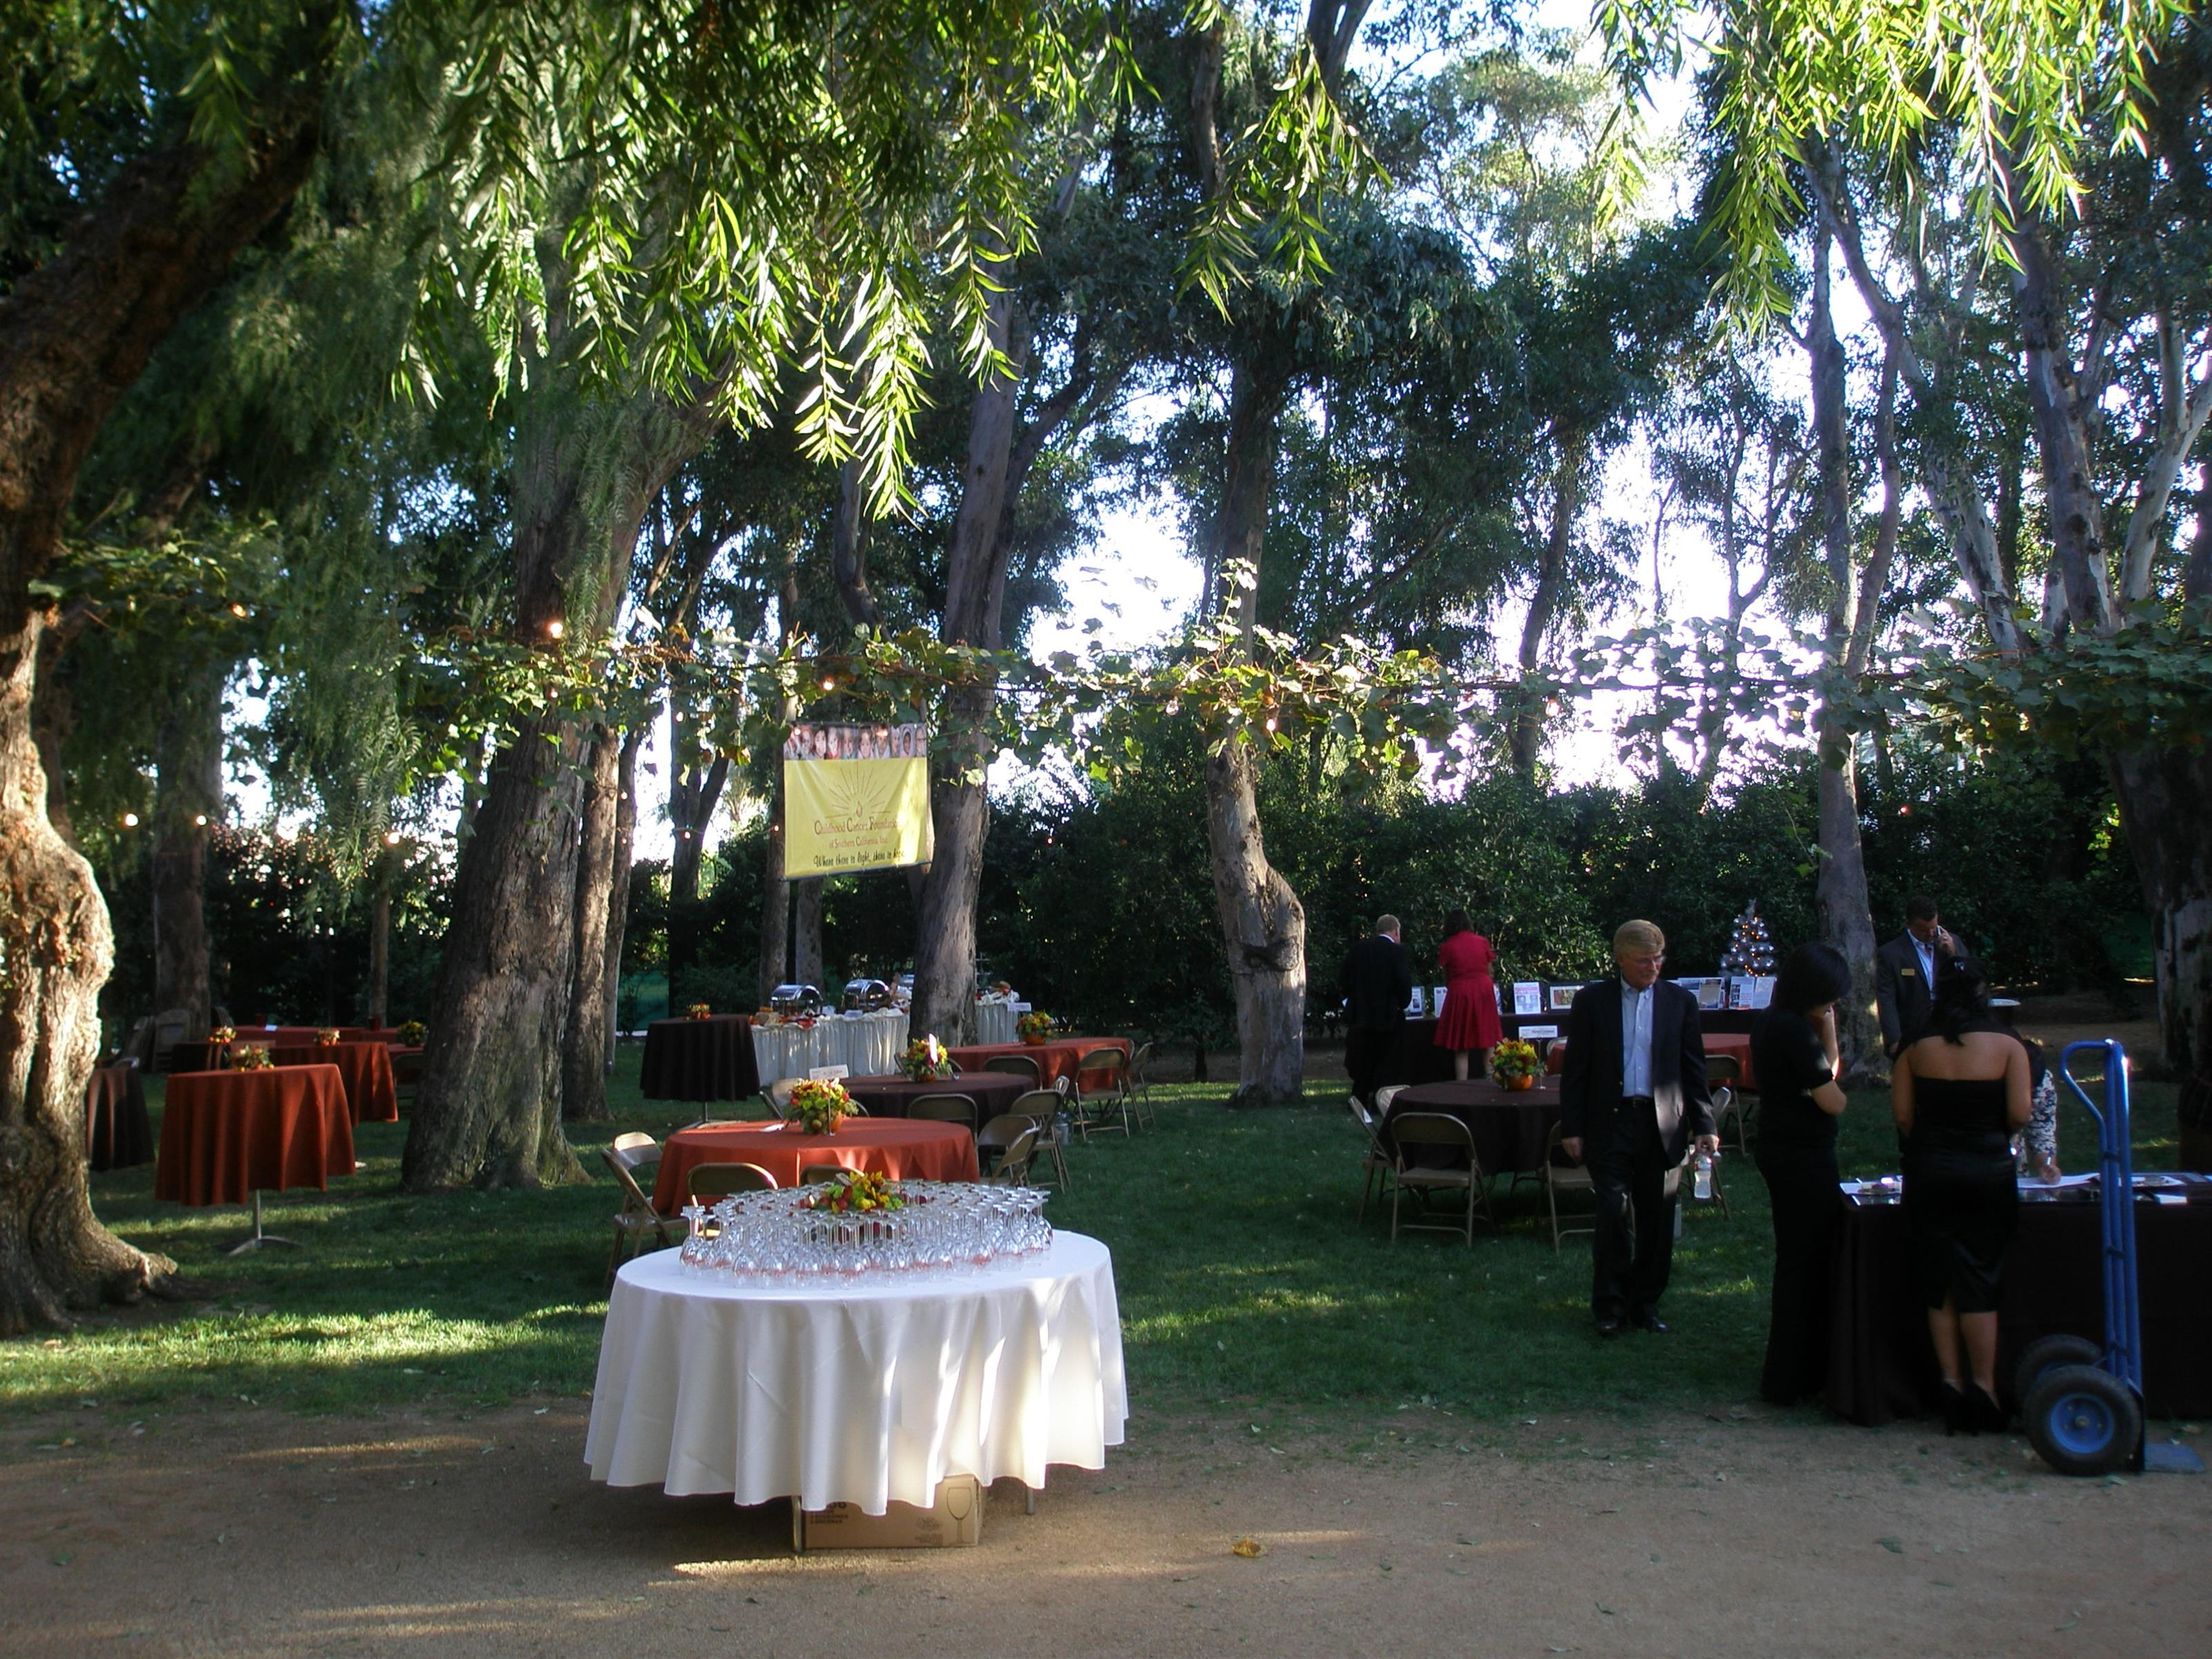 Outdoor banquet event under tall trees